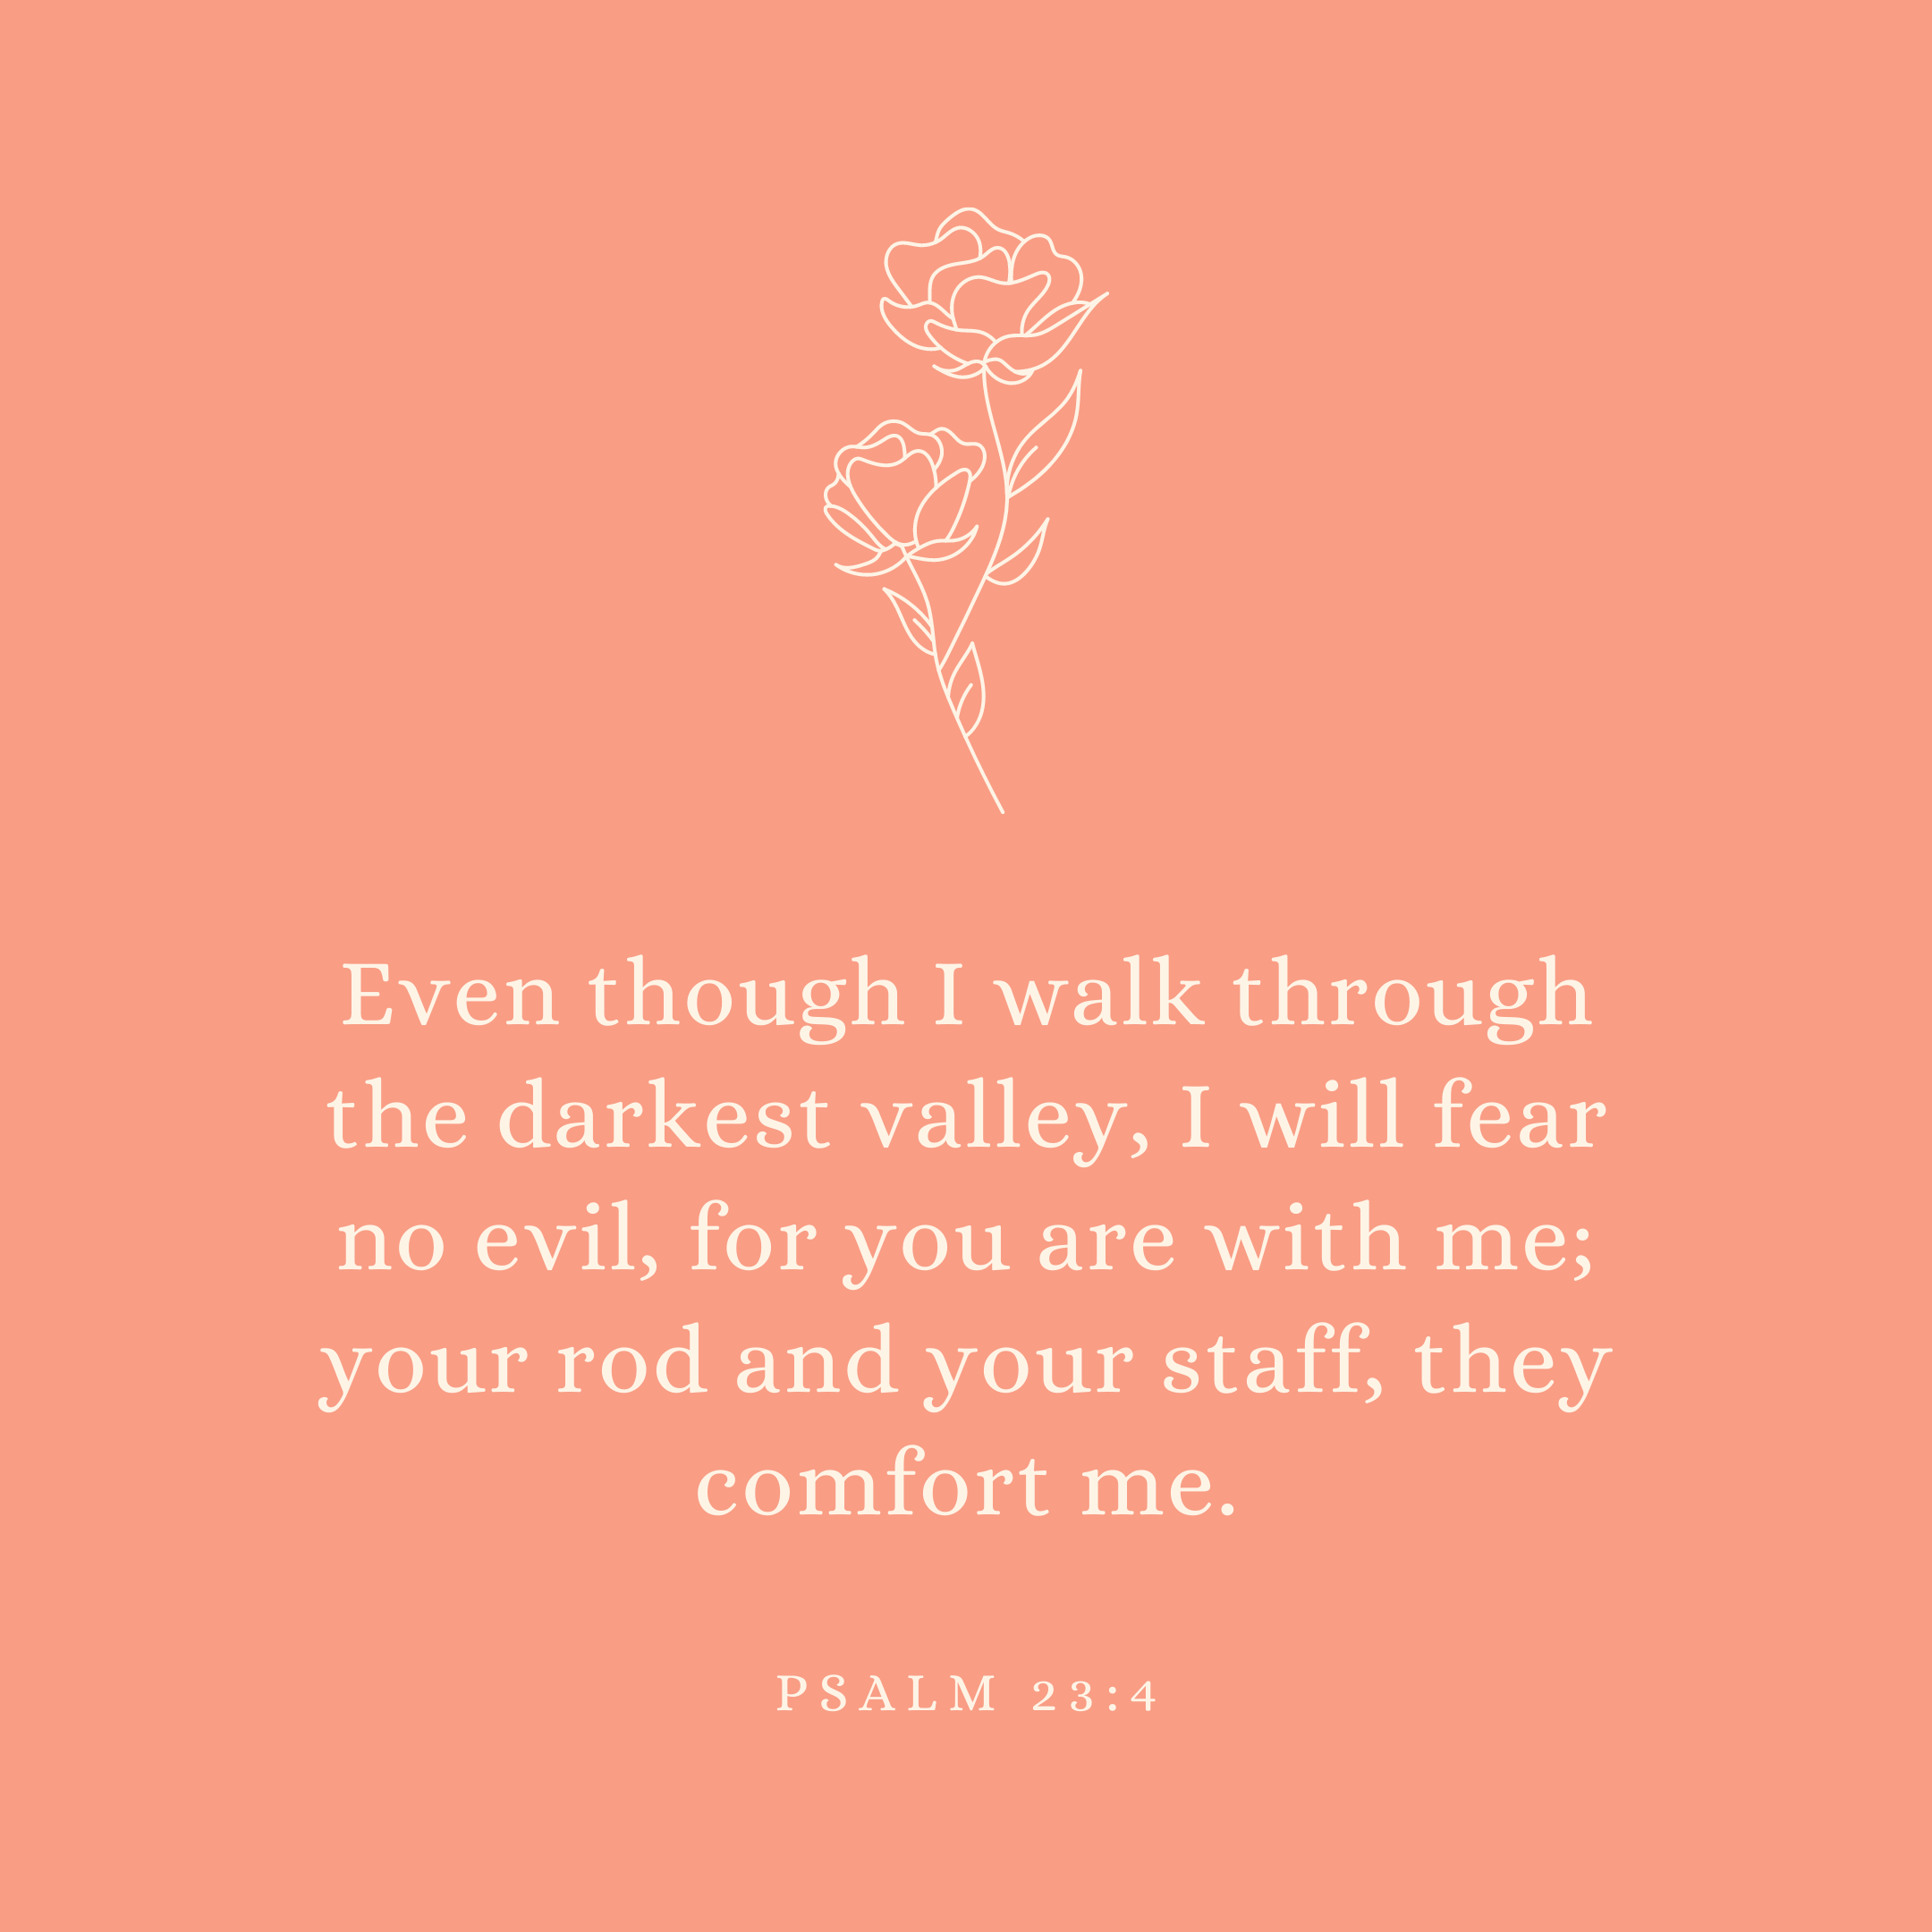 Psalm 23:4 Even though I walk through the darkest valley, I will fear no evil, for you are with me; your rod and your staff, they comfort me.